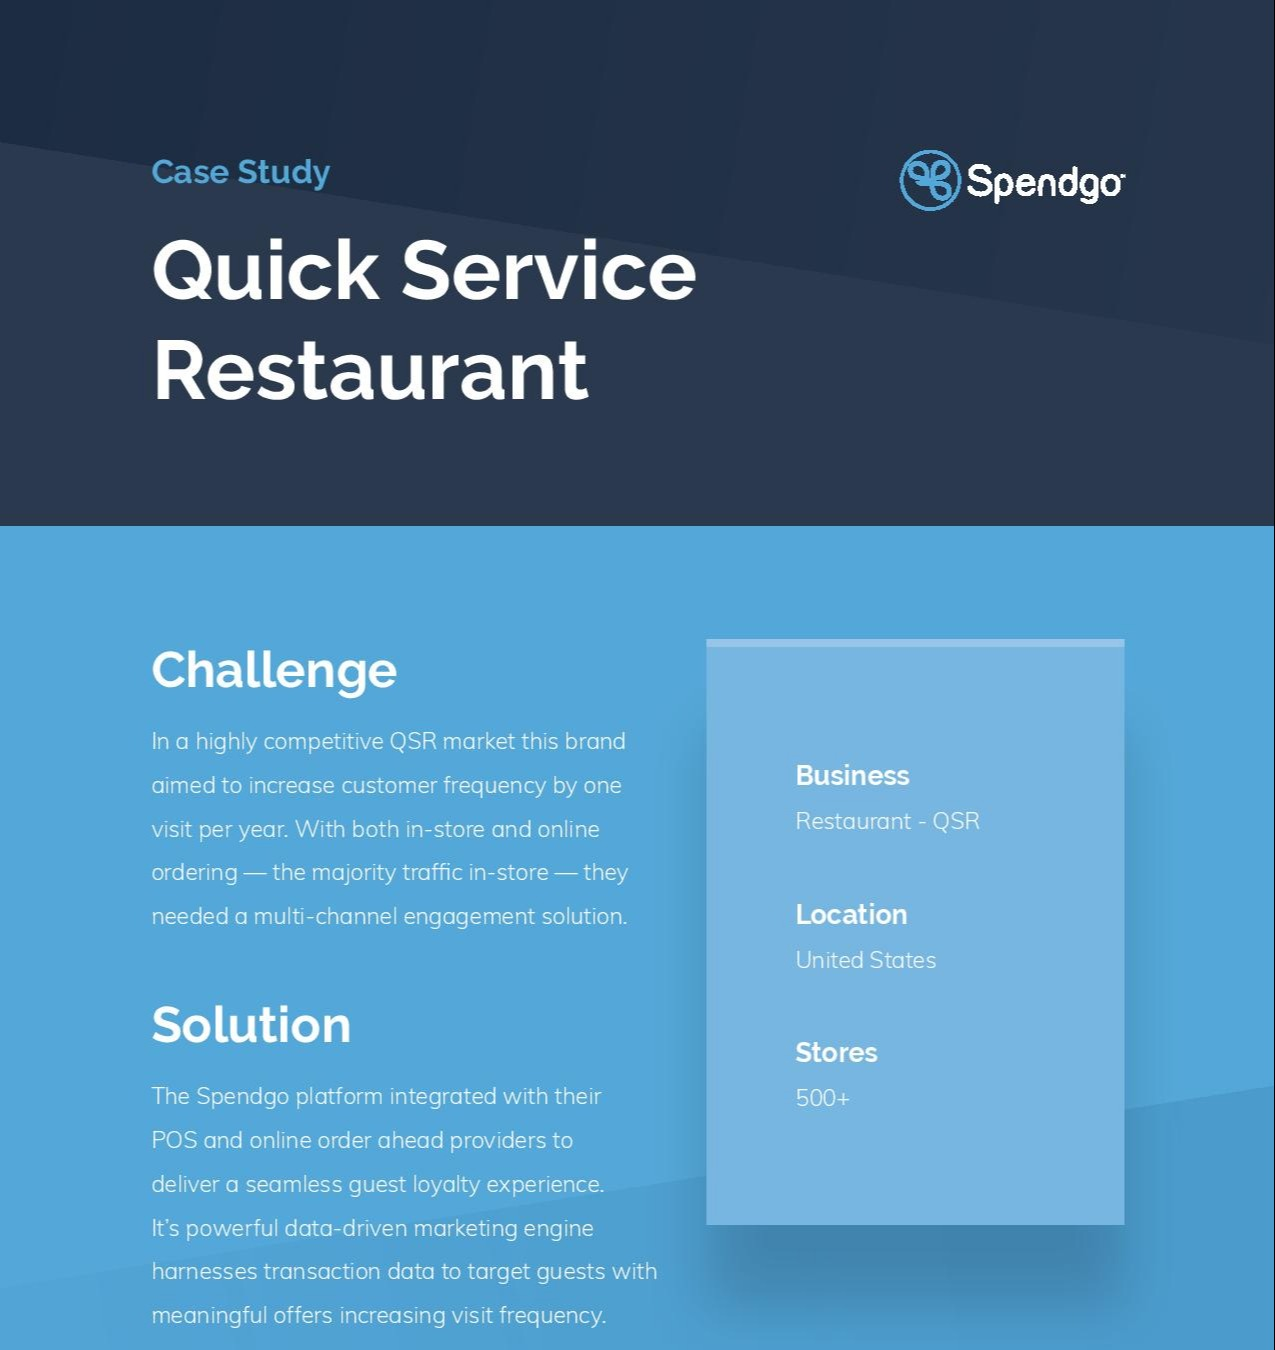 Spendgo's Strategy Improves Customer Visits at Quick Service Restaurants